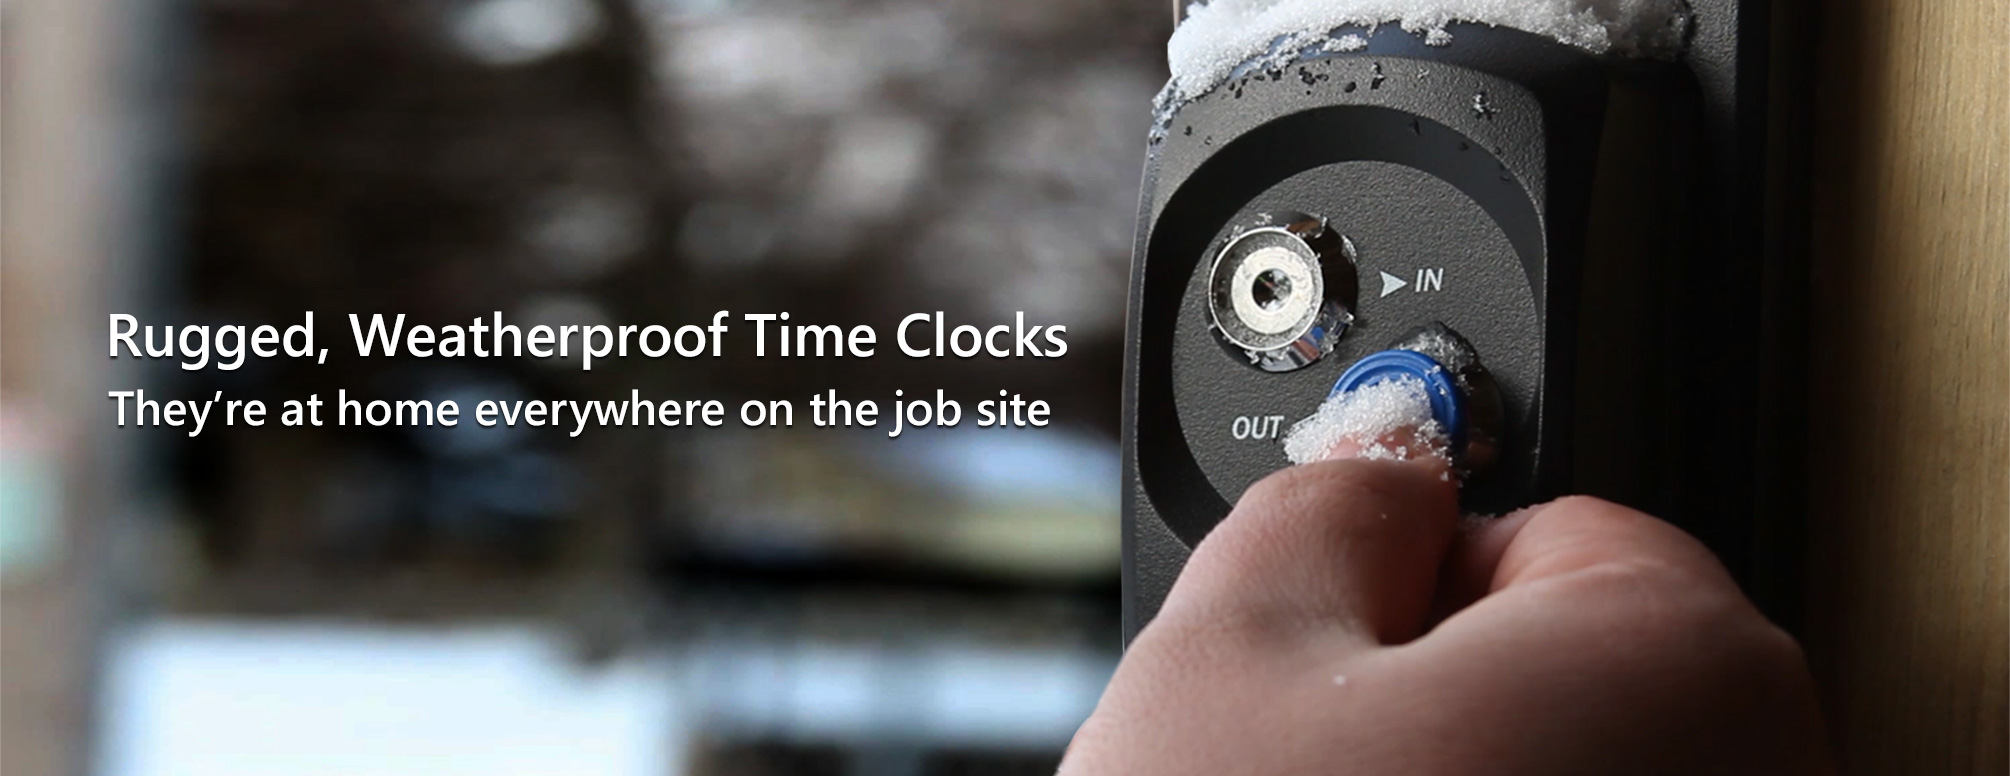 Got weather? Bring it on! Our rugged time clock can handle it.